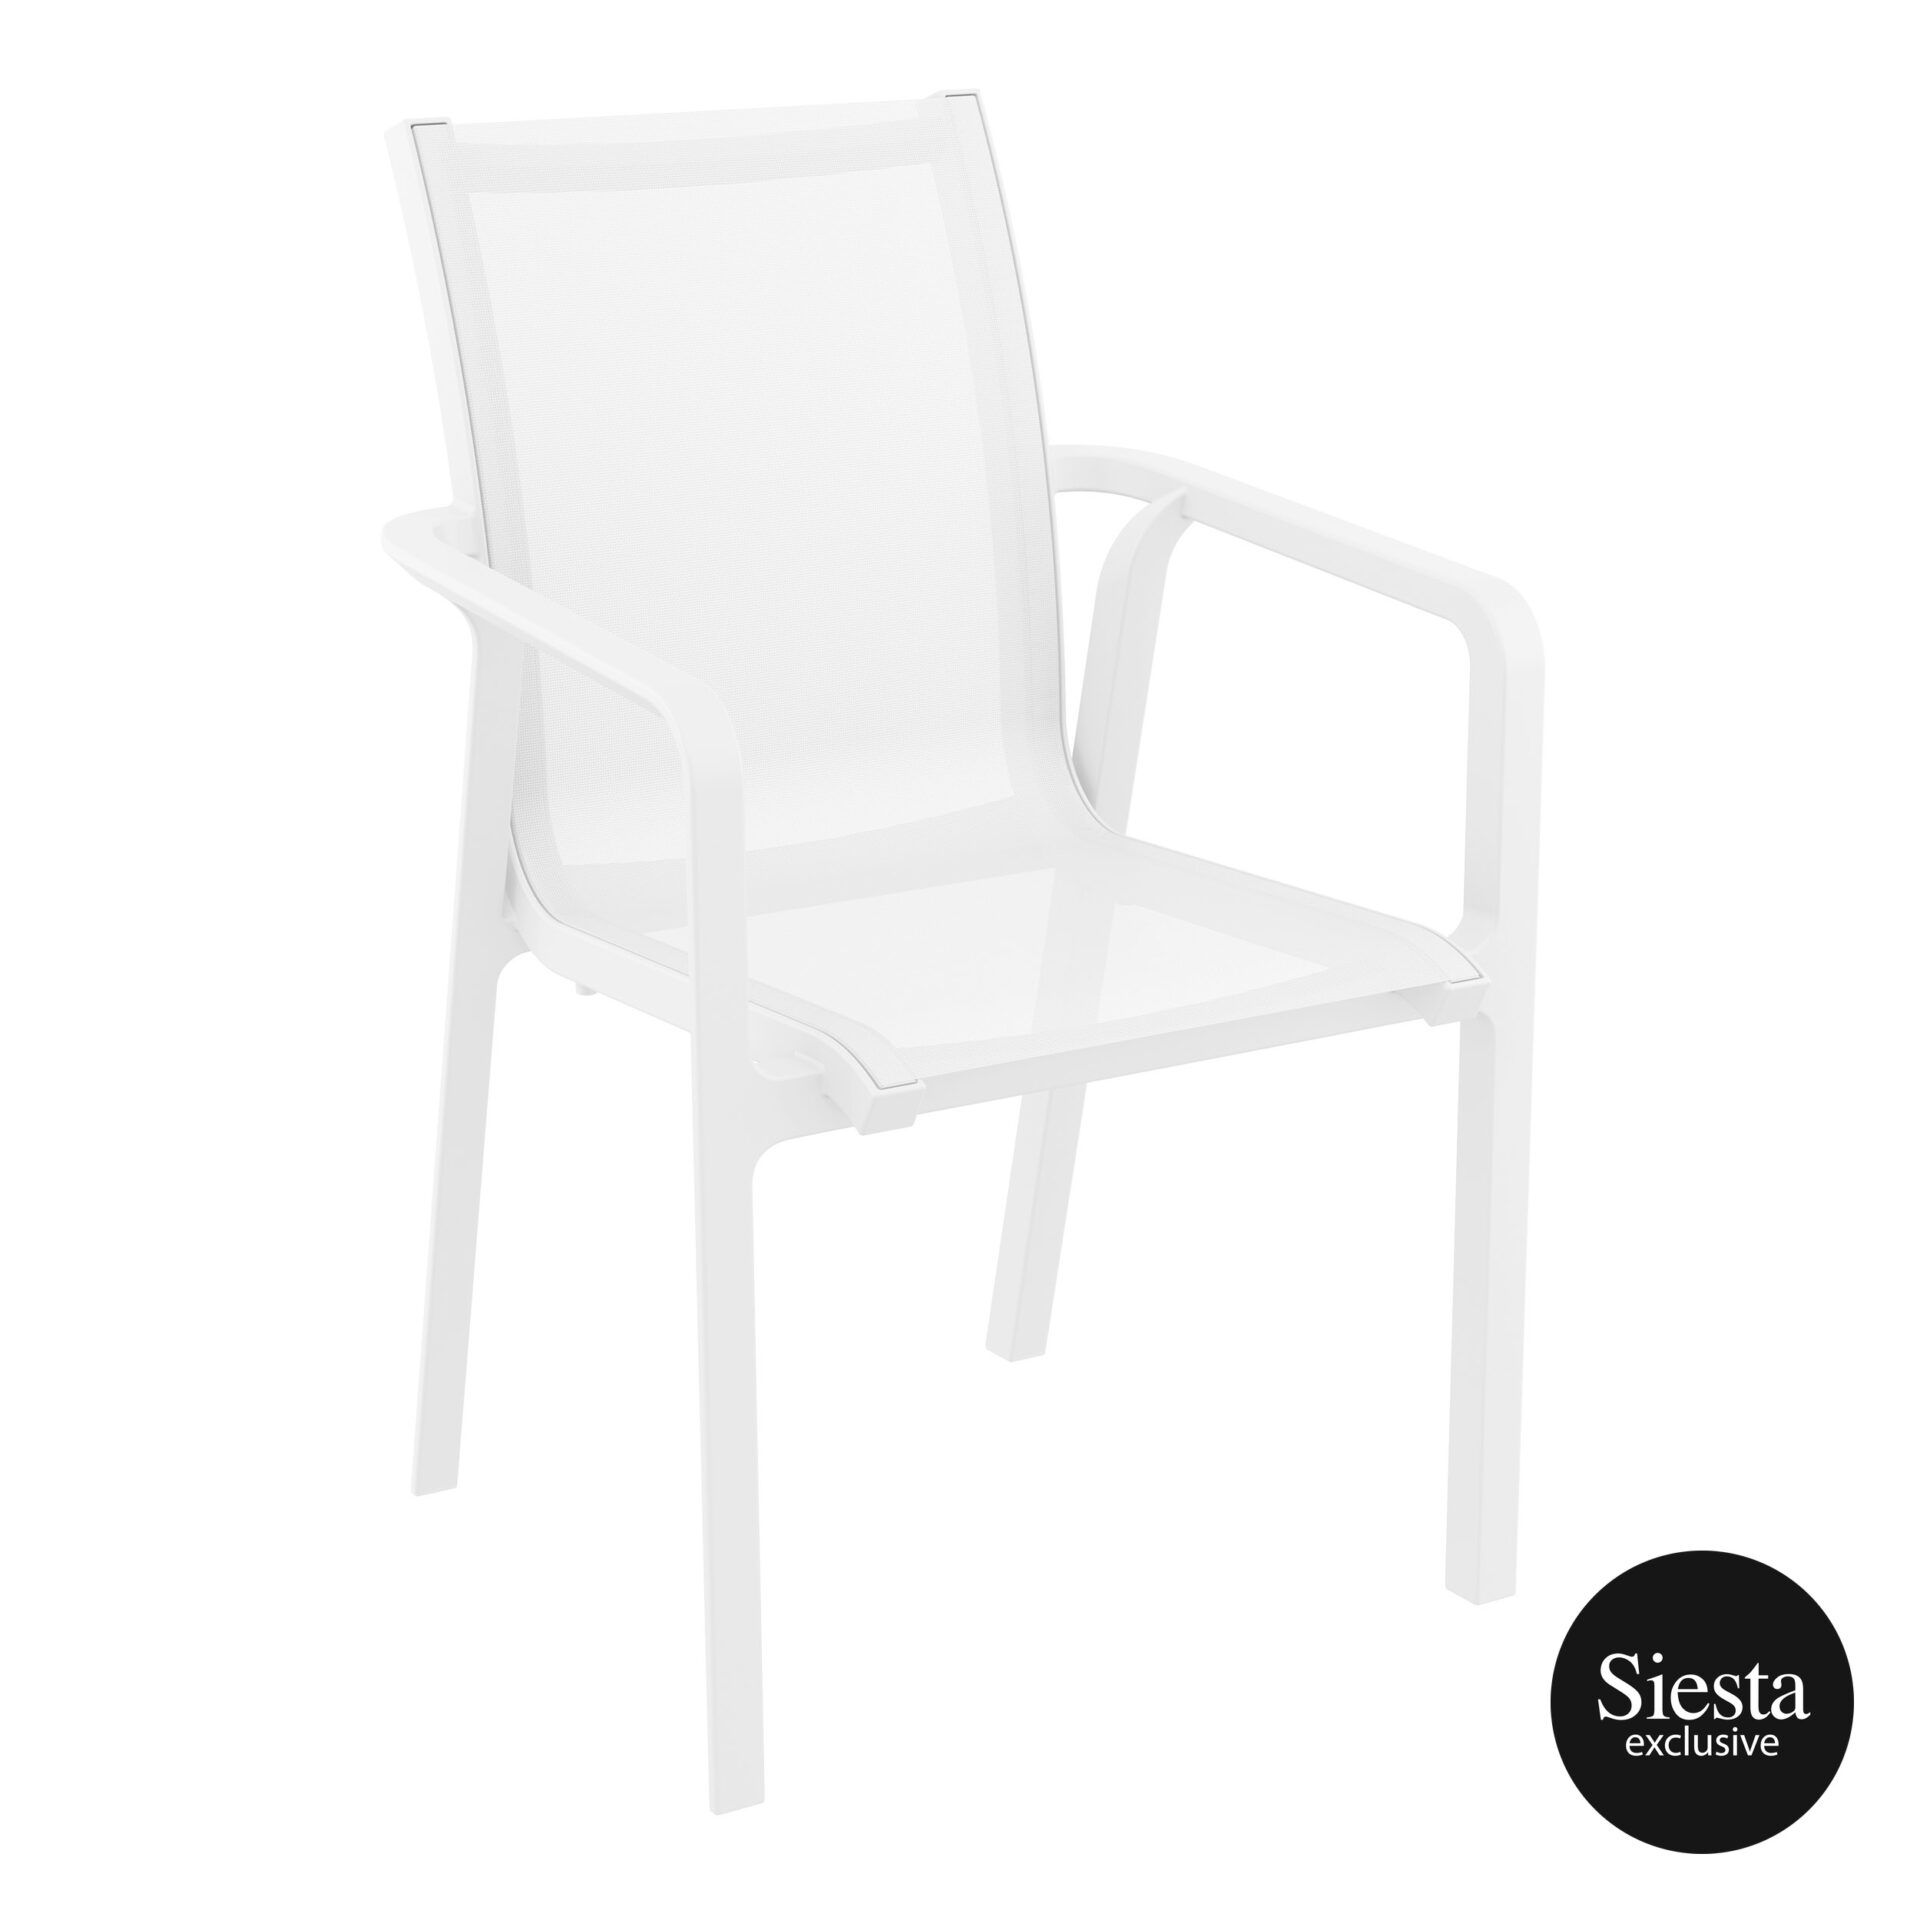 outdoor seating pacific armchair white white front side 2